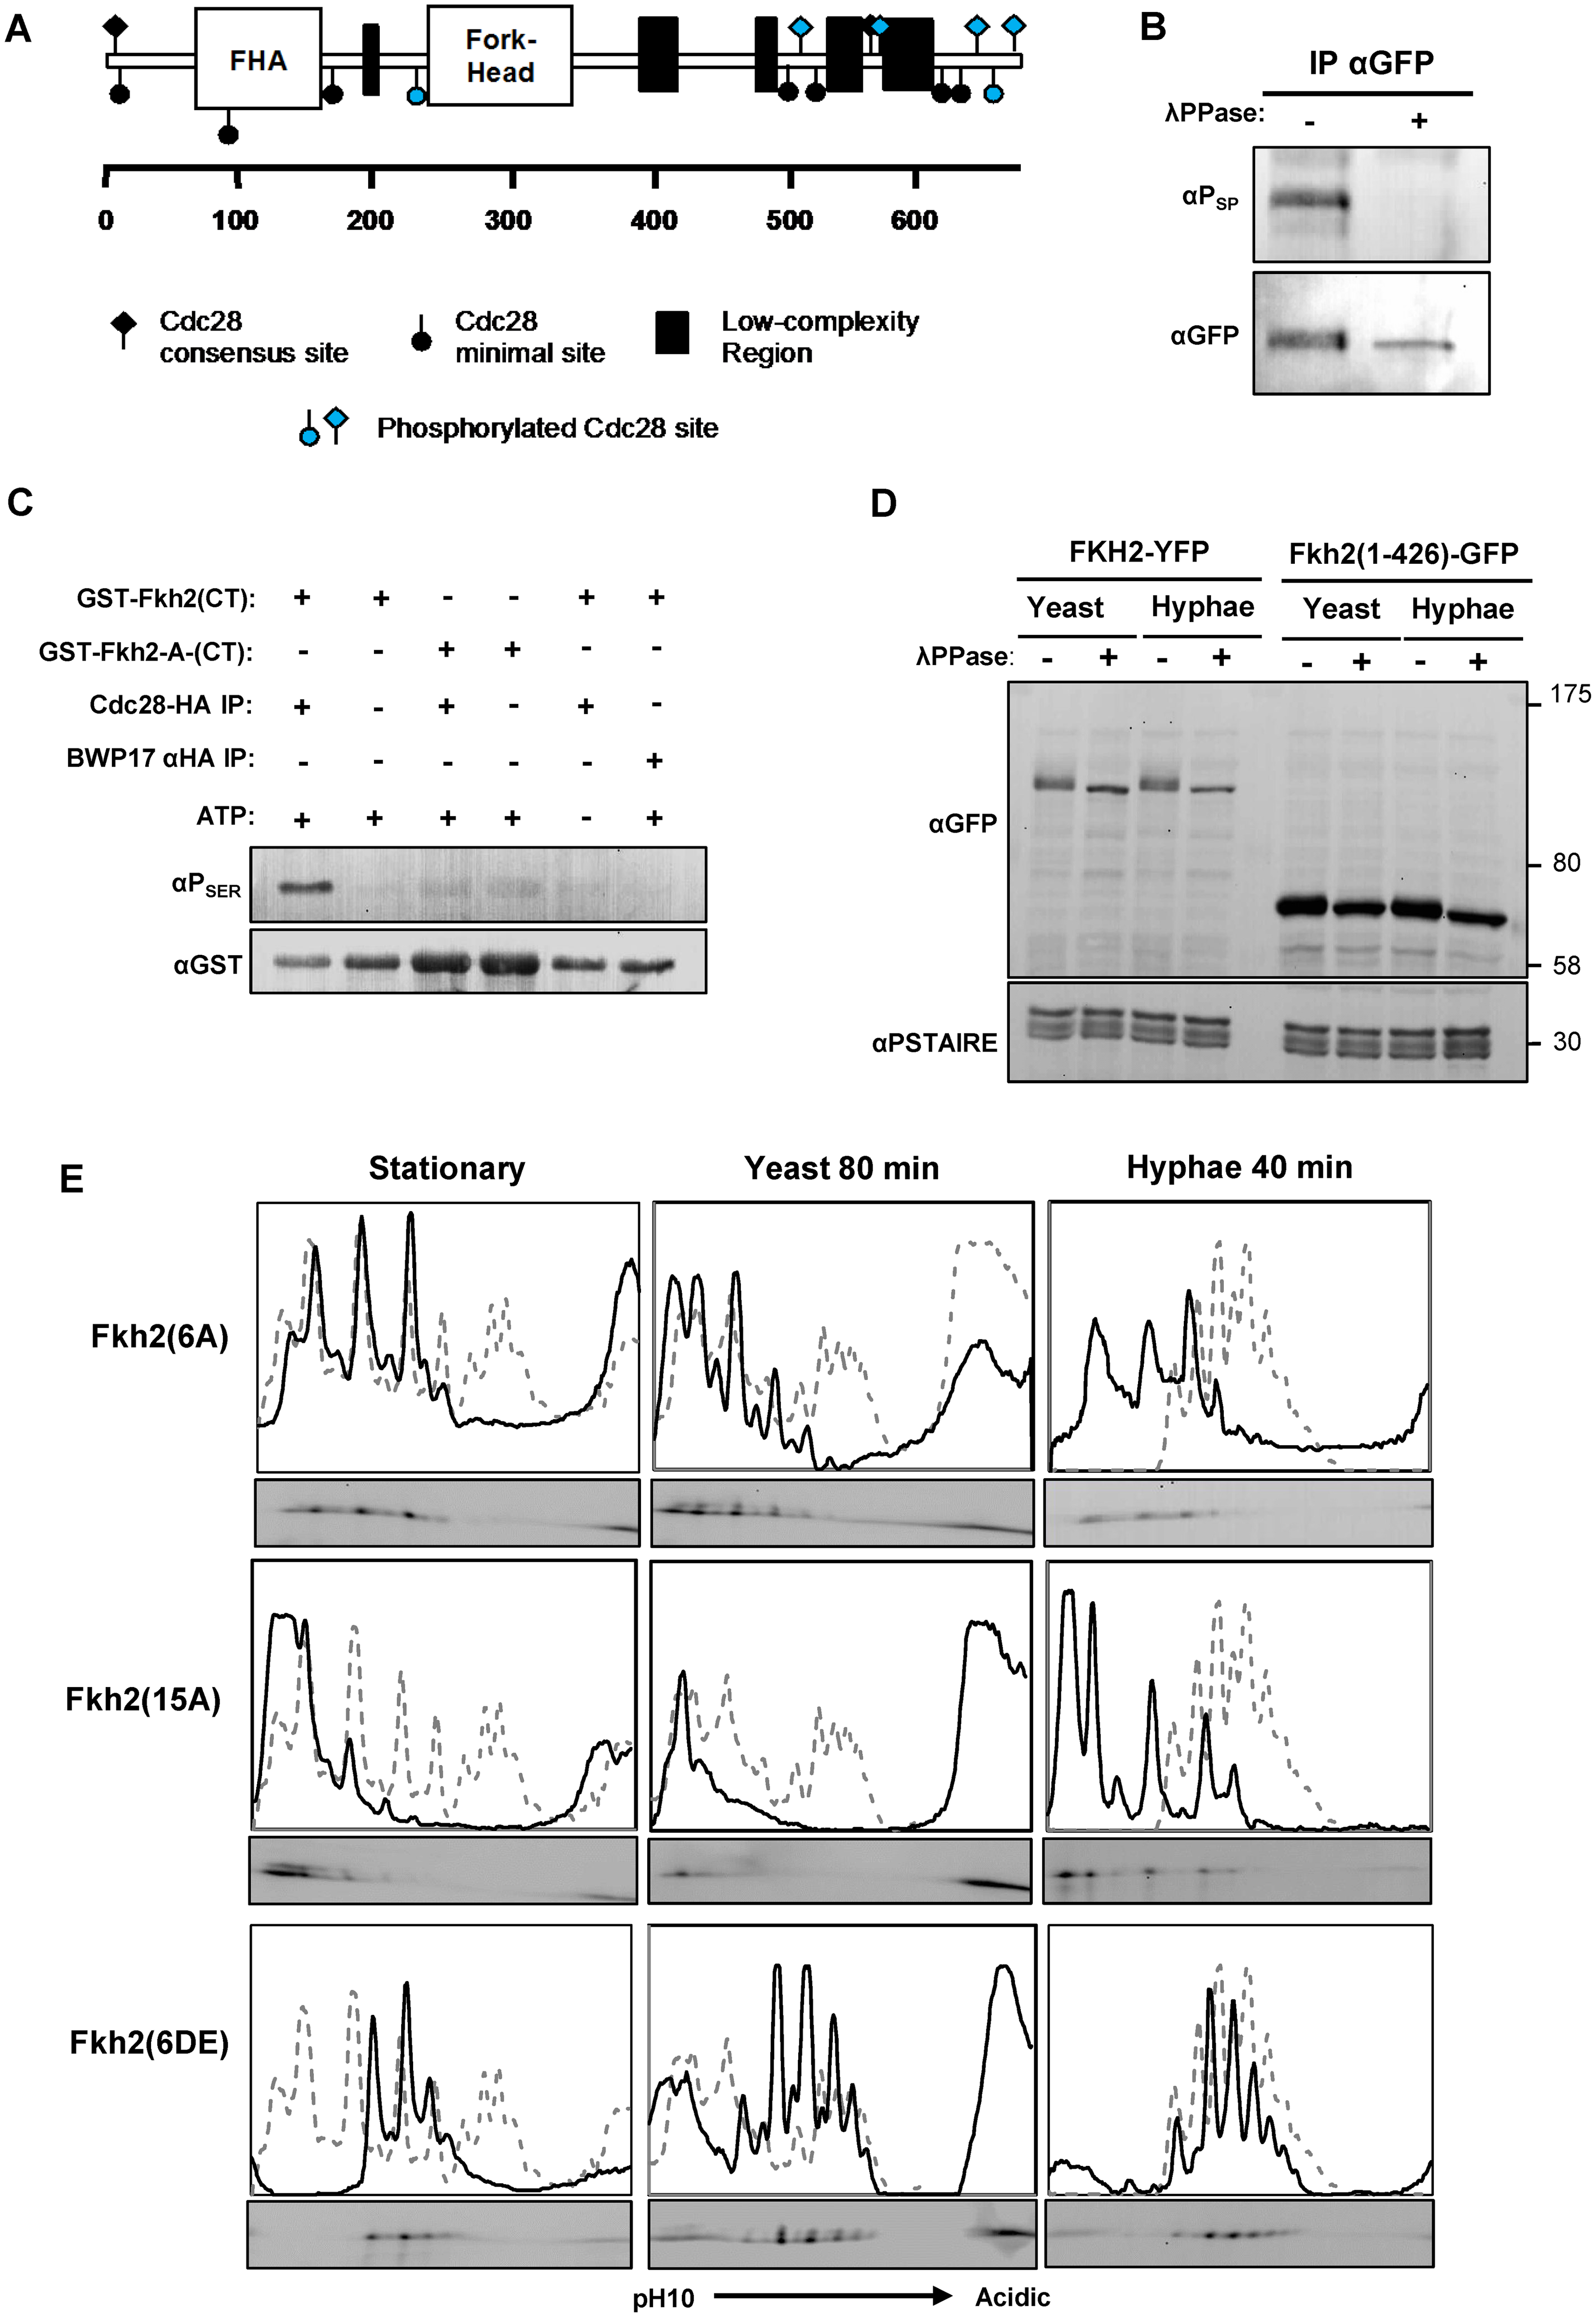 Fkh2 is phosphorylated by Cdc28.